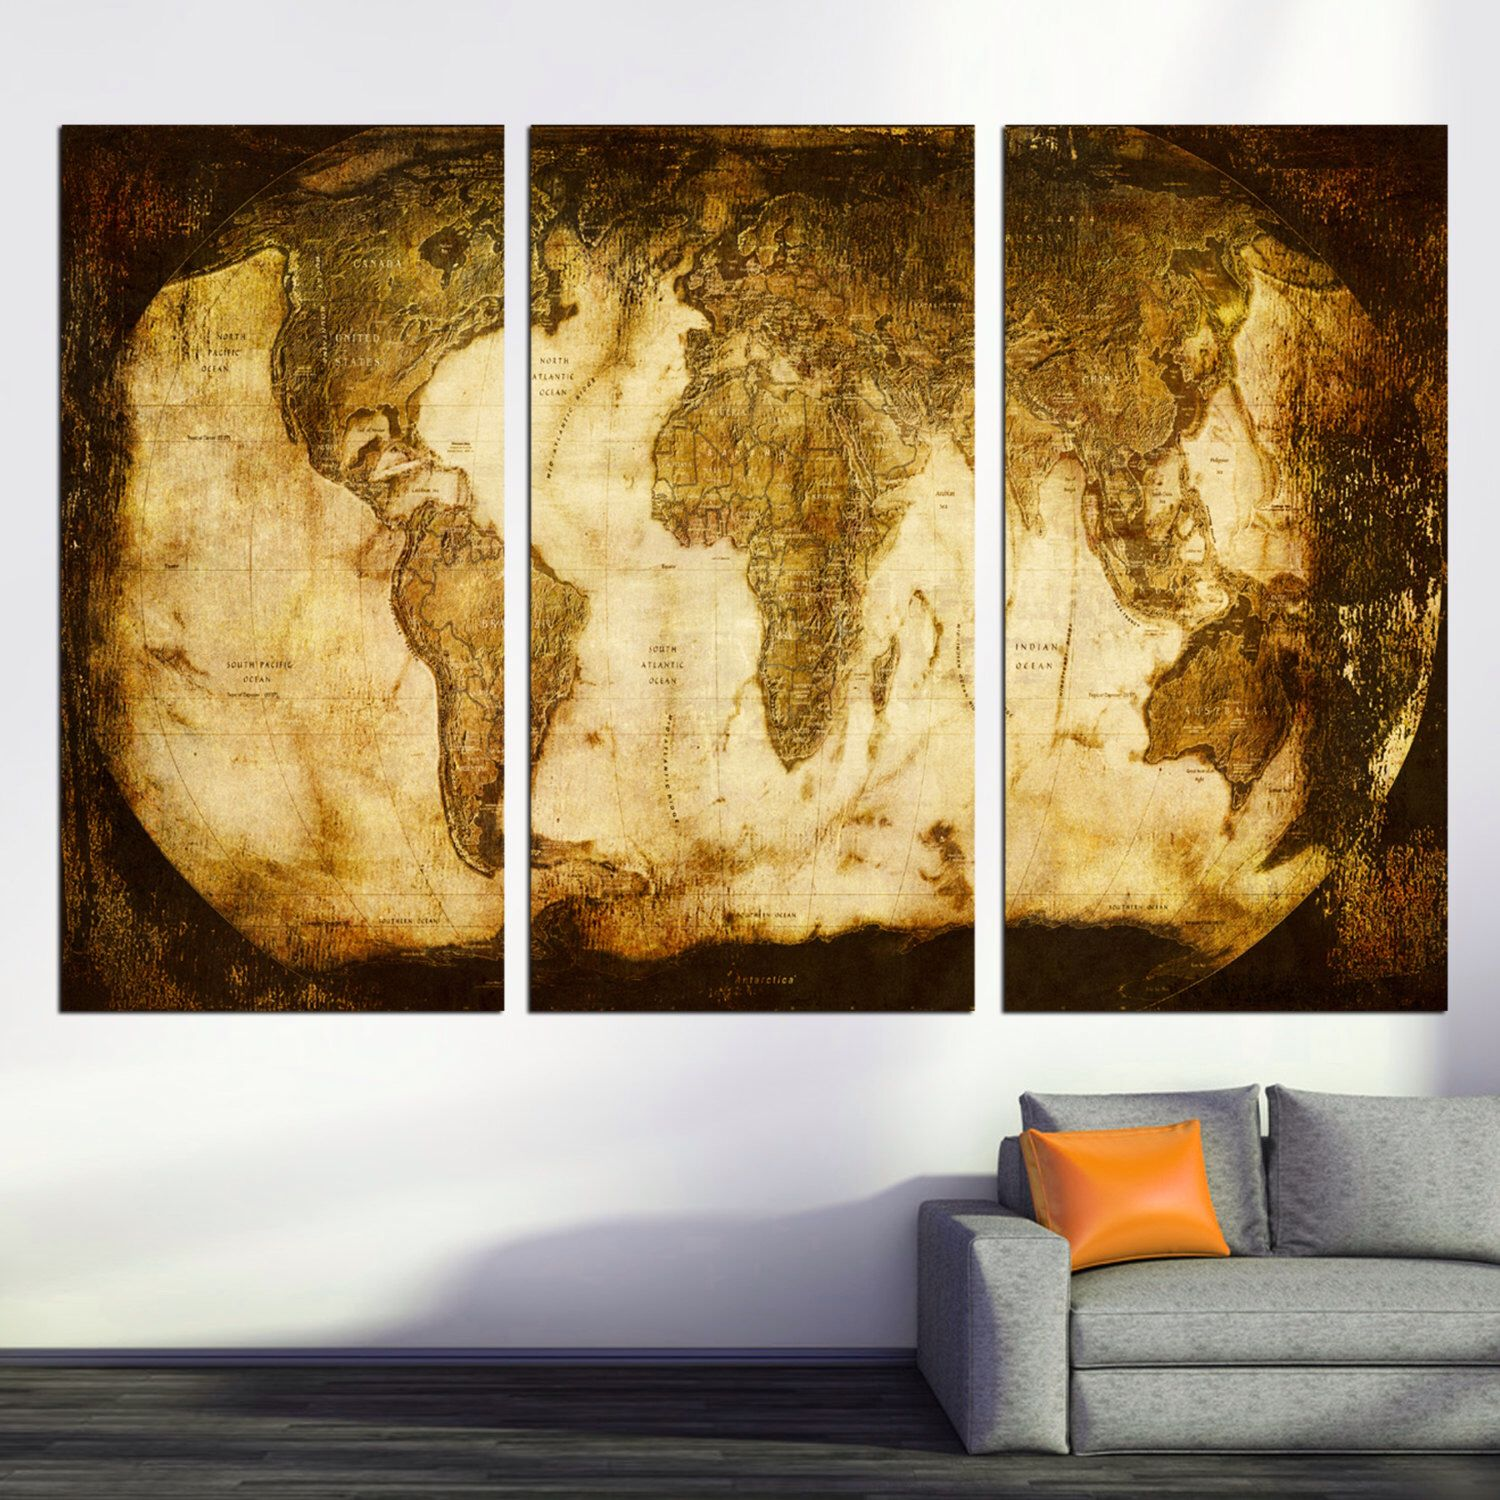 Rustic World Map 3 Panel Split (Triptych) Canvas Print Stretched on ...